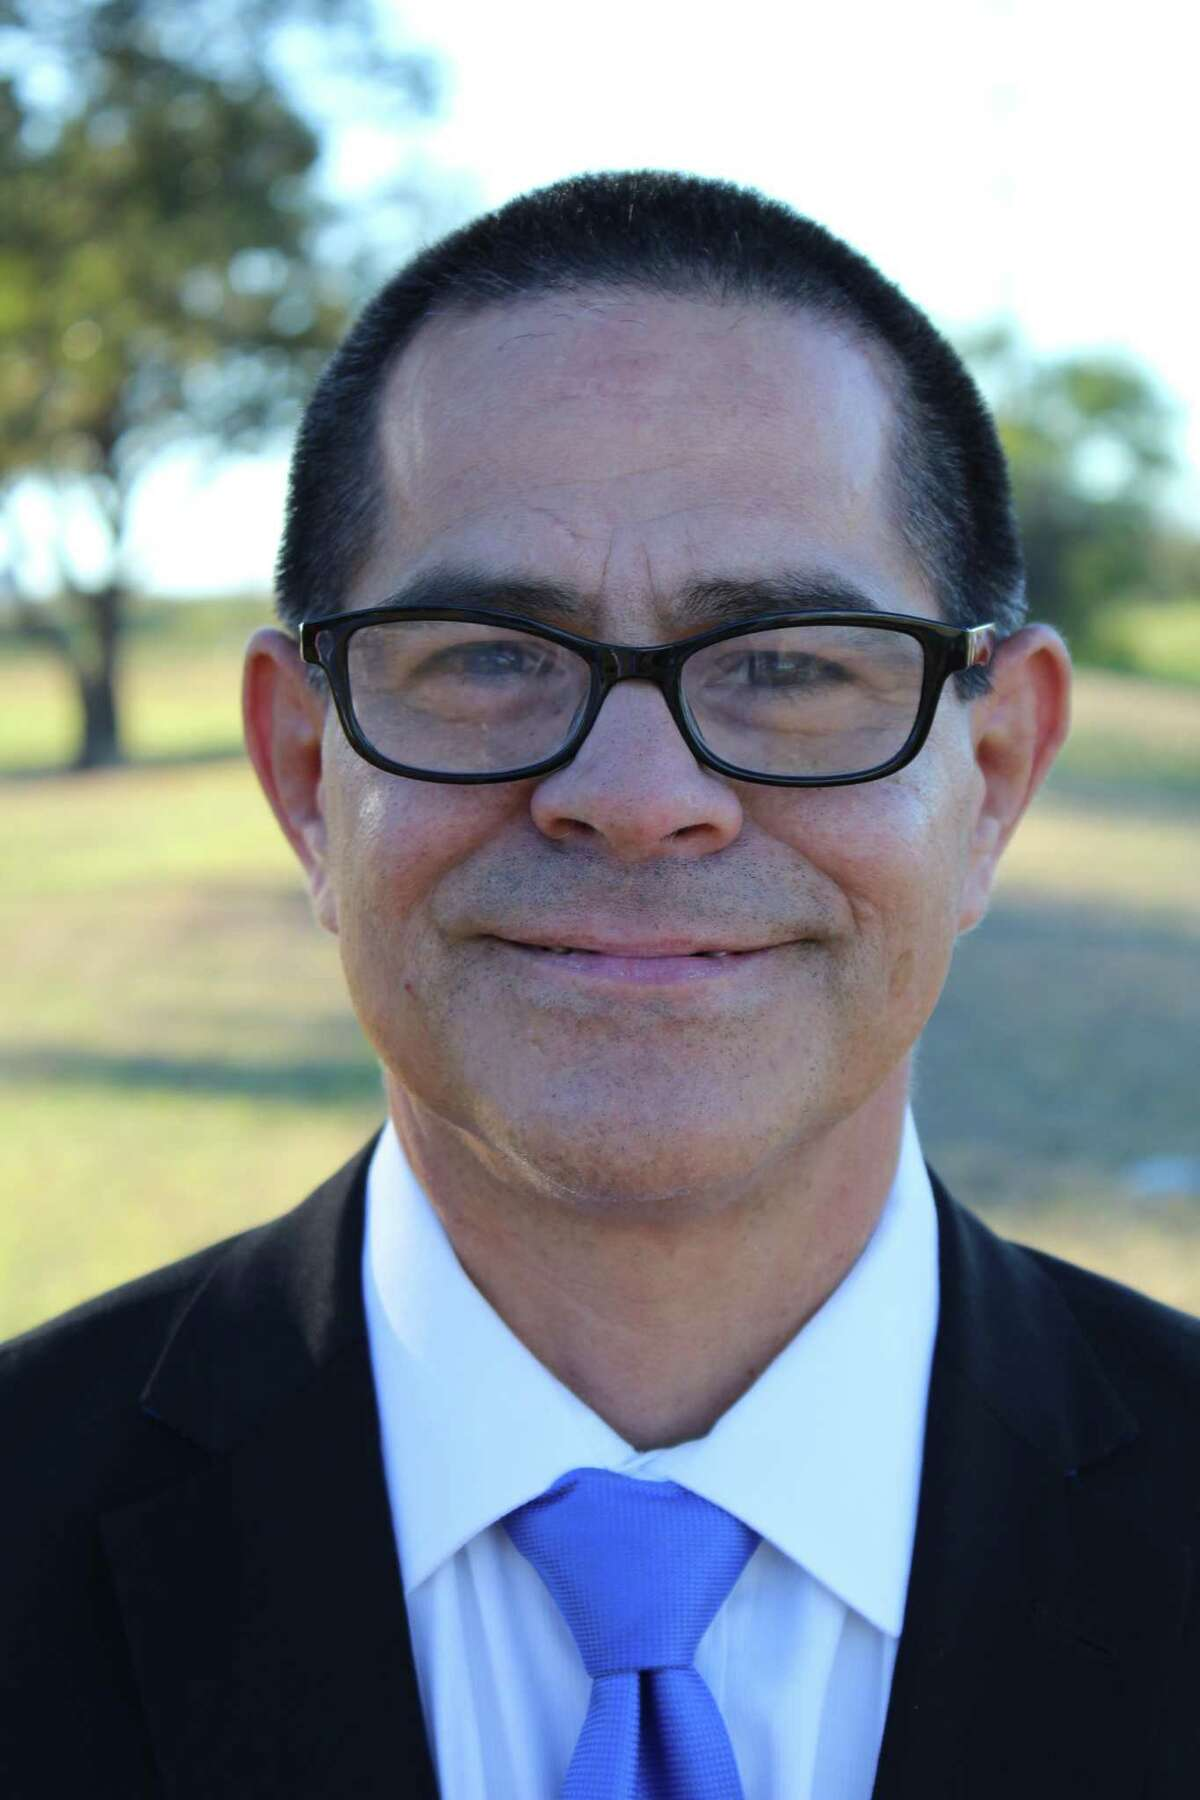 Steve Huerta, a social justice advocate, is running in the special election to fill the vacant District 125 seat in the Texas House.